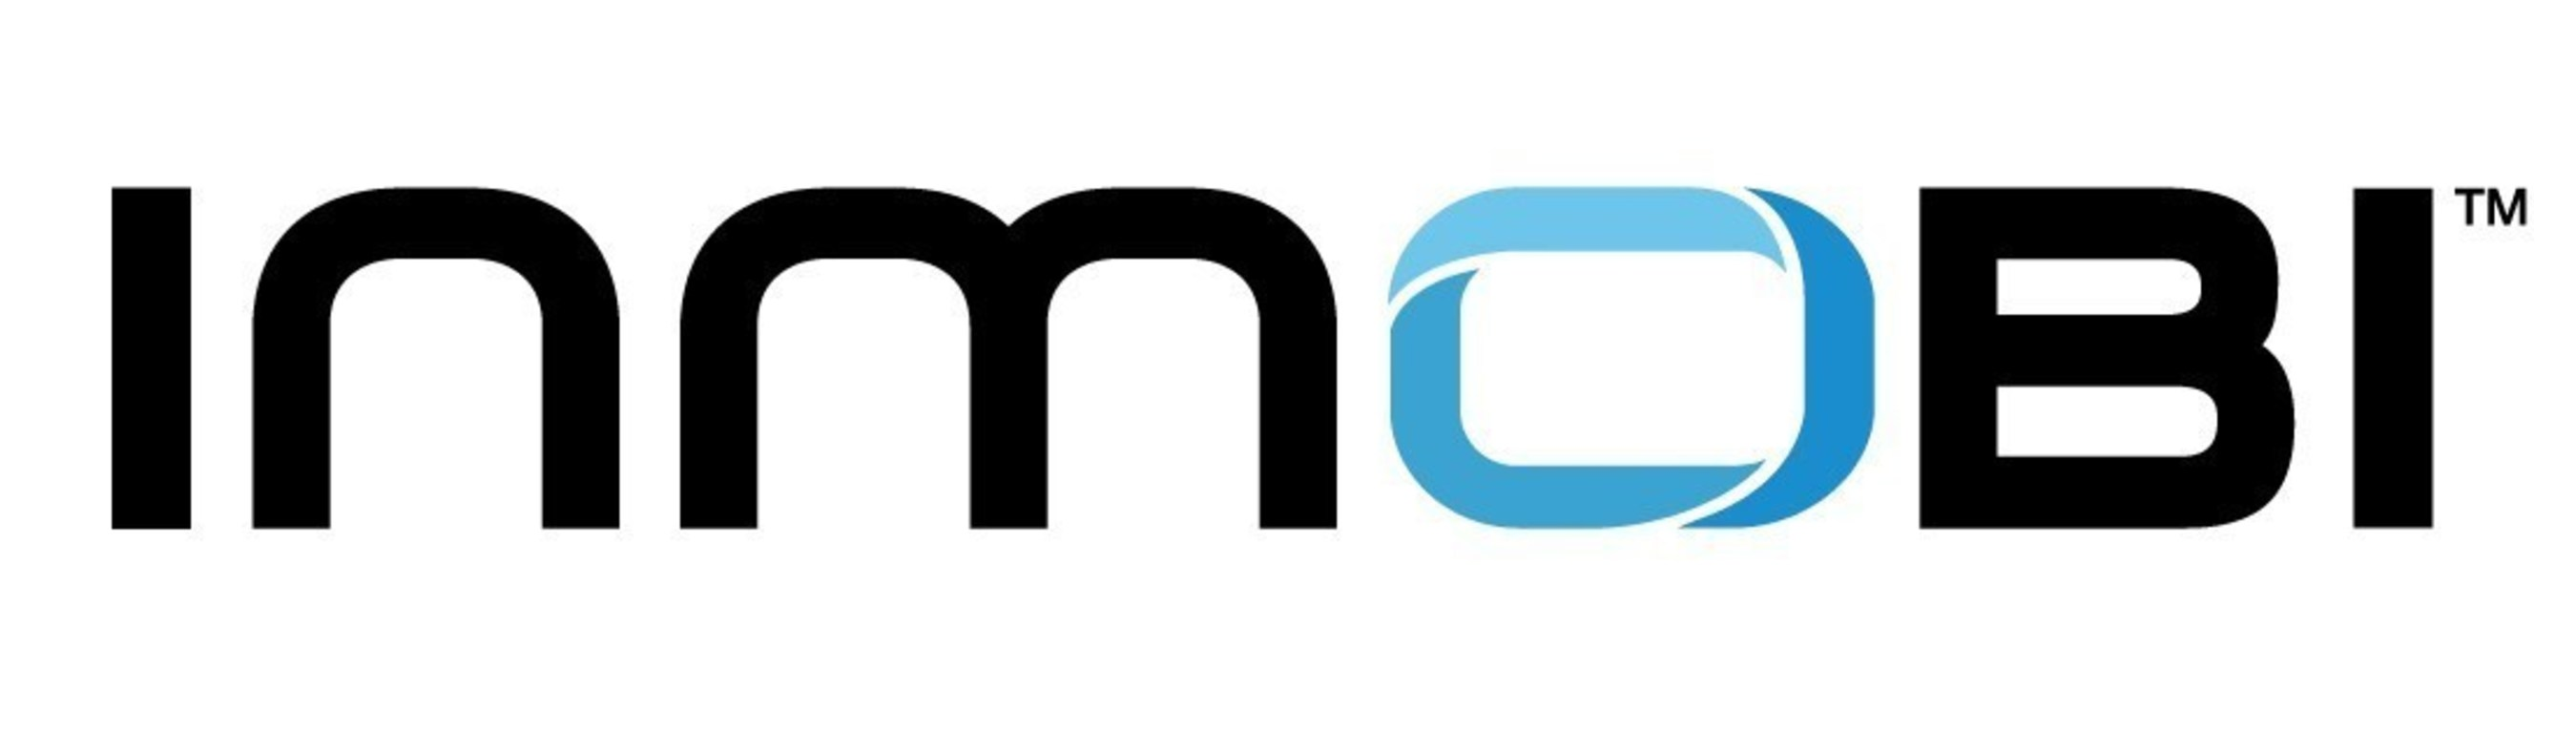 InMobi is the world's most powerful mobile advertising platform enabling brands, developers, and publishers to engage mobile consumers globally. Recognized by MIT Technology Review as one of the 50 Most Disruptive Companies, InMobi reaches over 1.4 billion unique mobile devices across 200 countries.